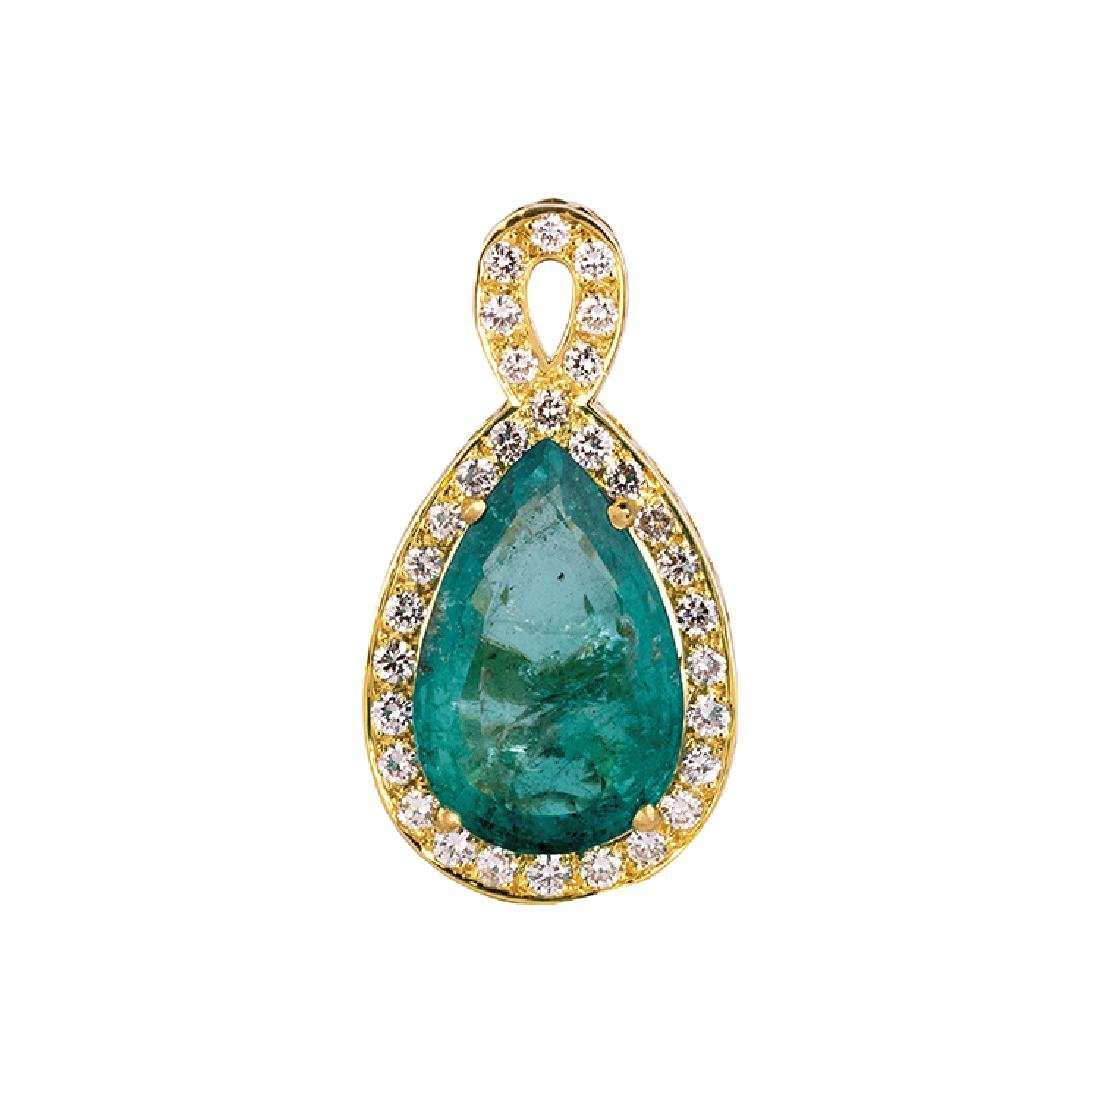 Pendant with emerald drop cti 17,16  in frame of diamon